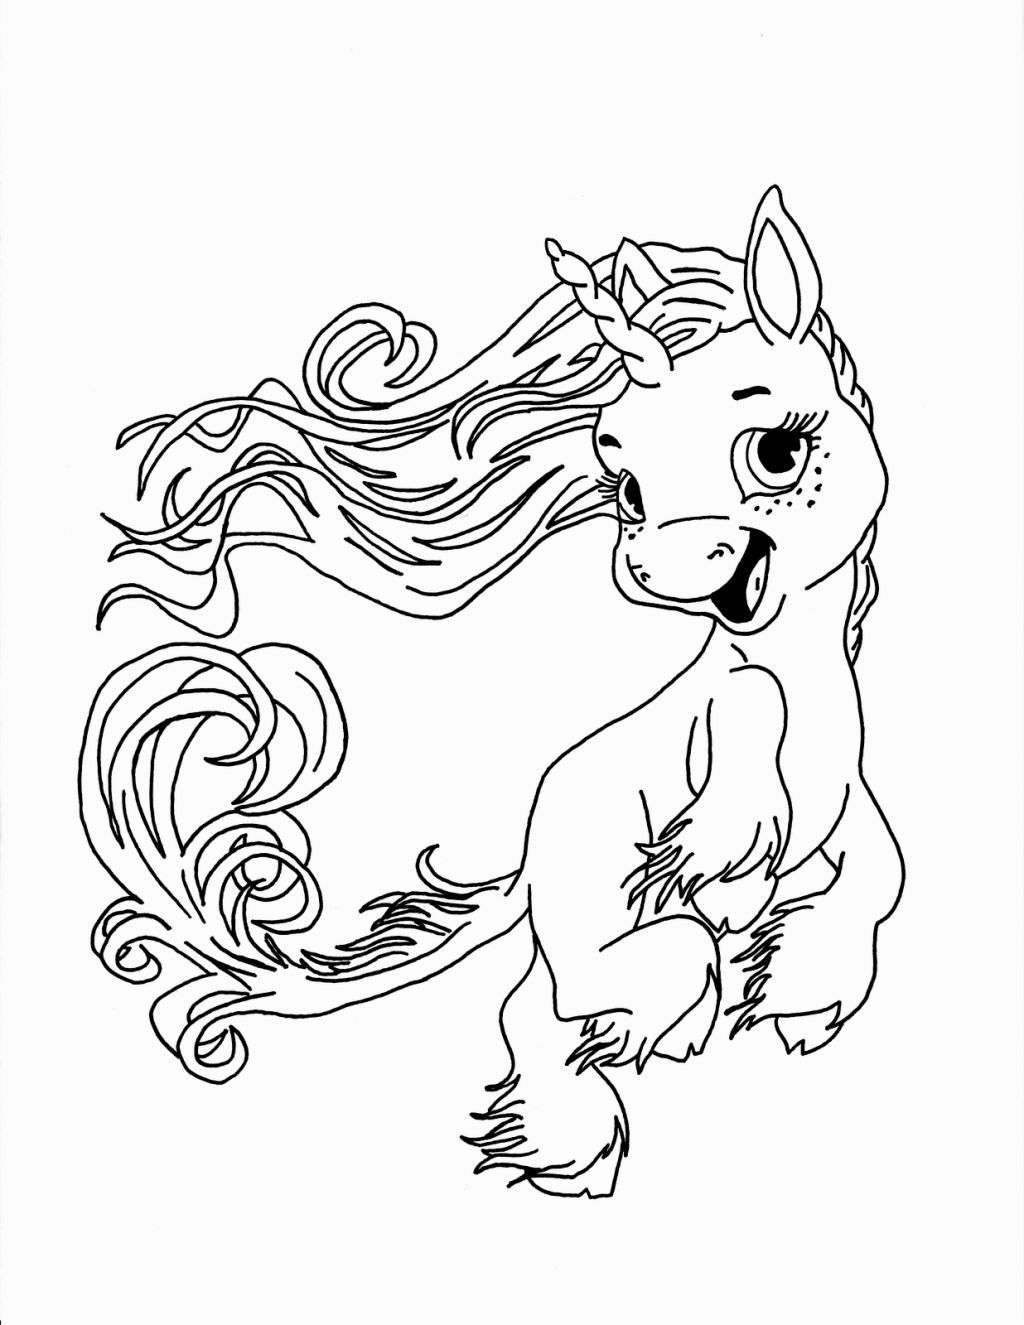 Magical unicorn coloring pages - Printable Unicorn Coloring Pages